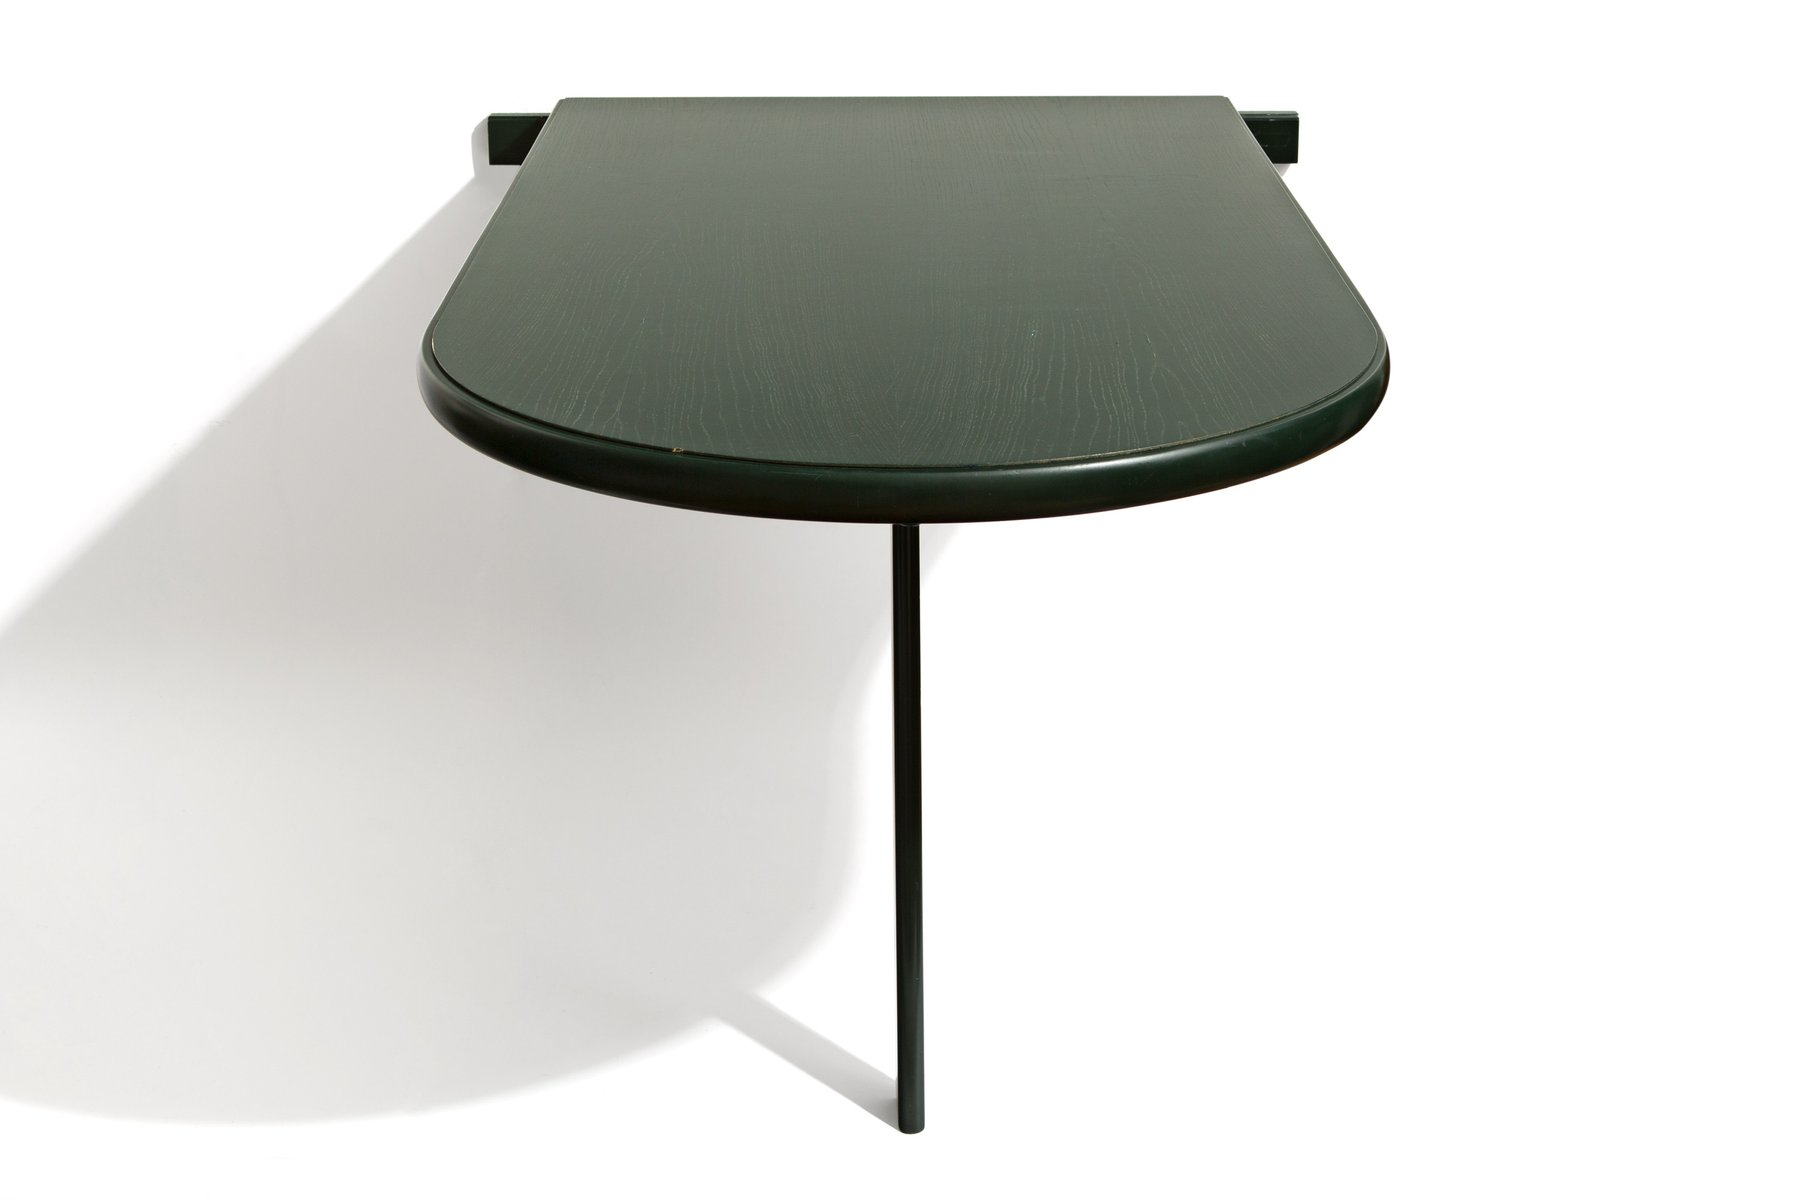 table pliante portofino par studio simon pour simon. Black Bedroom Furniture Sets. Home Design Ideas